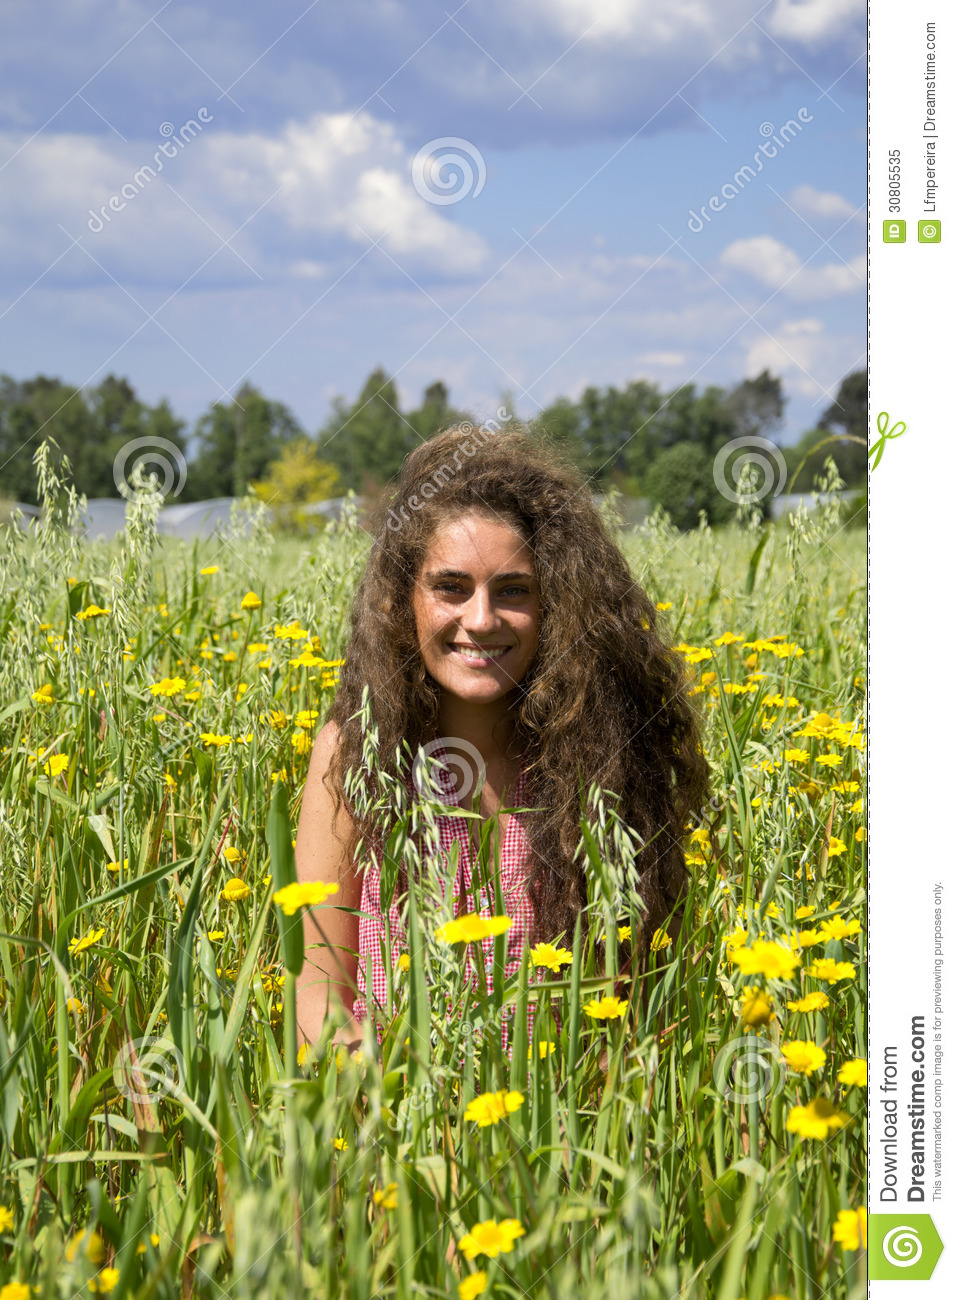 Young Woman On A Field Of Flowers Stock Image - Image ...